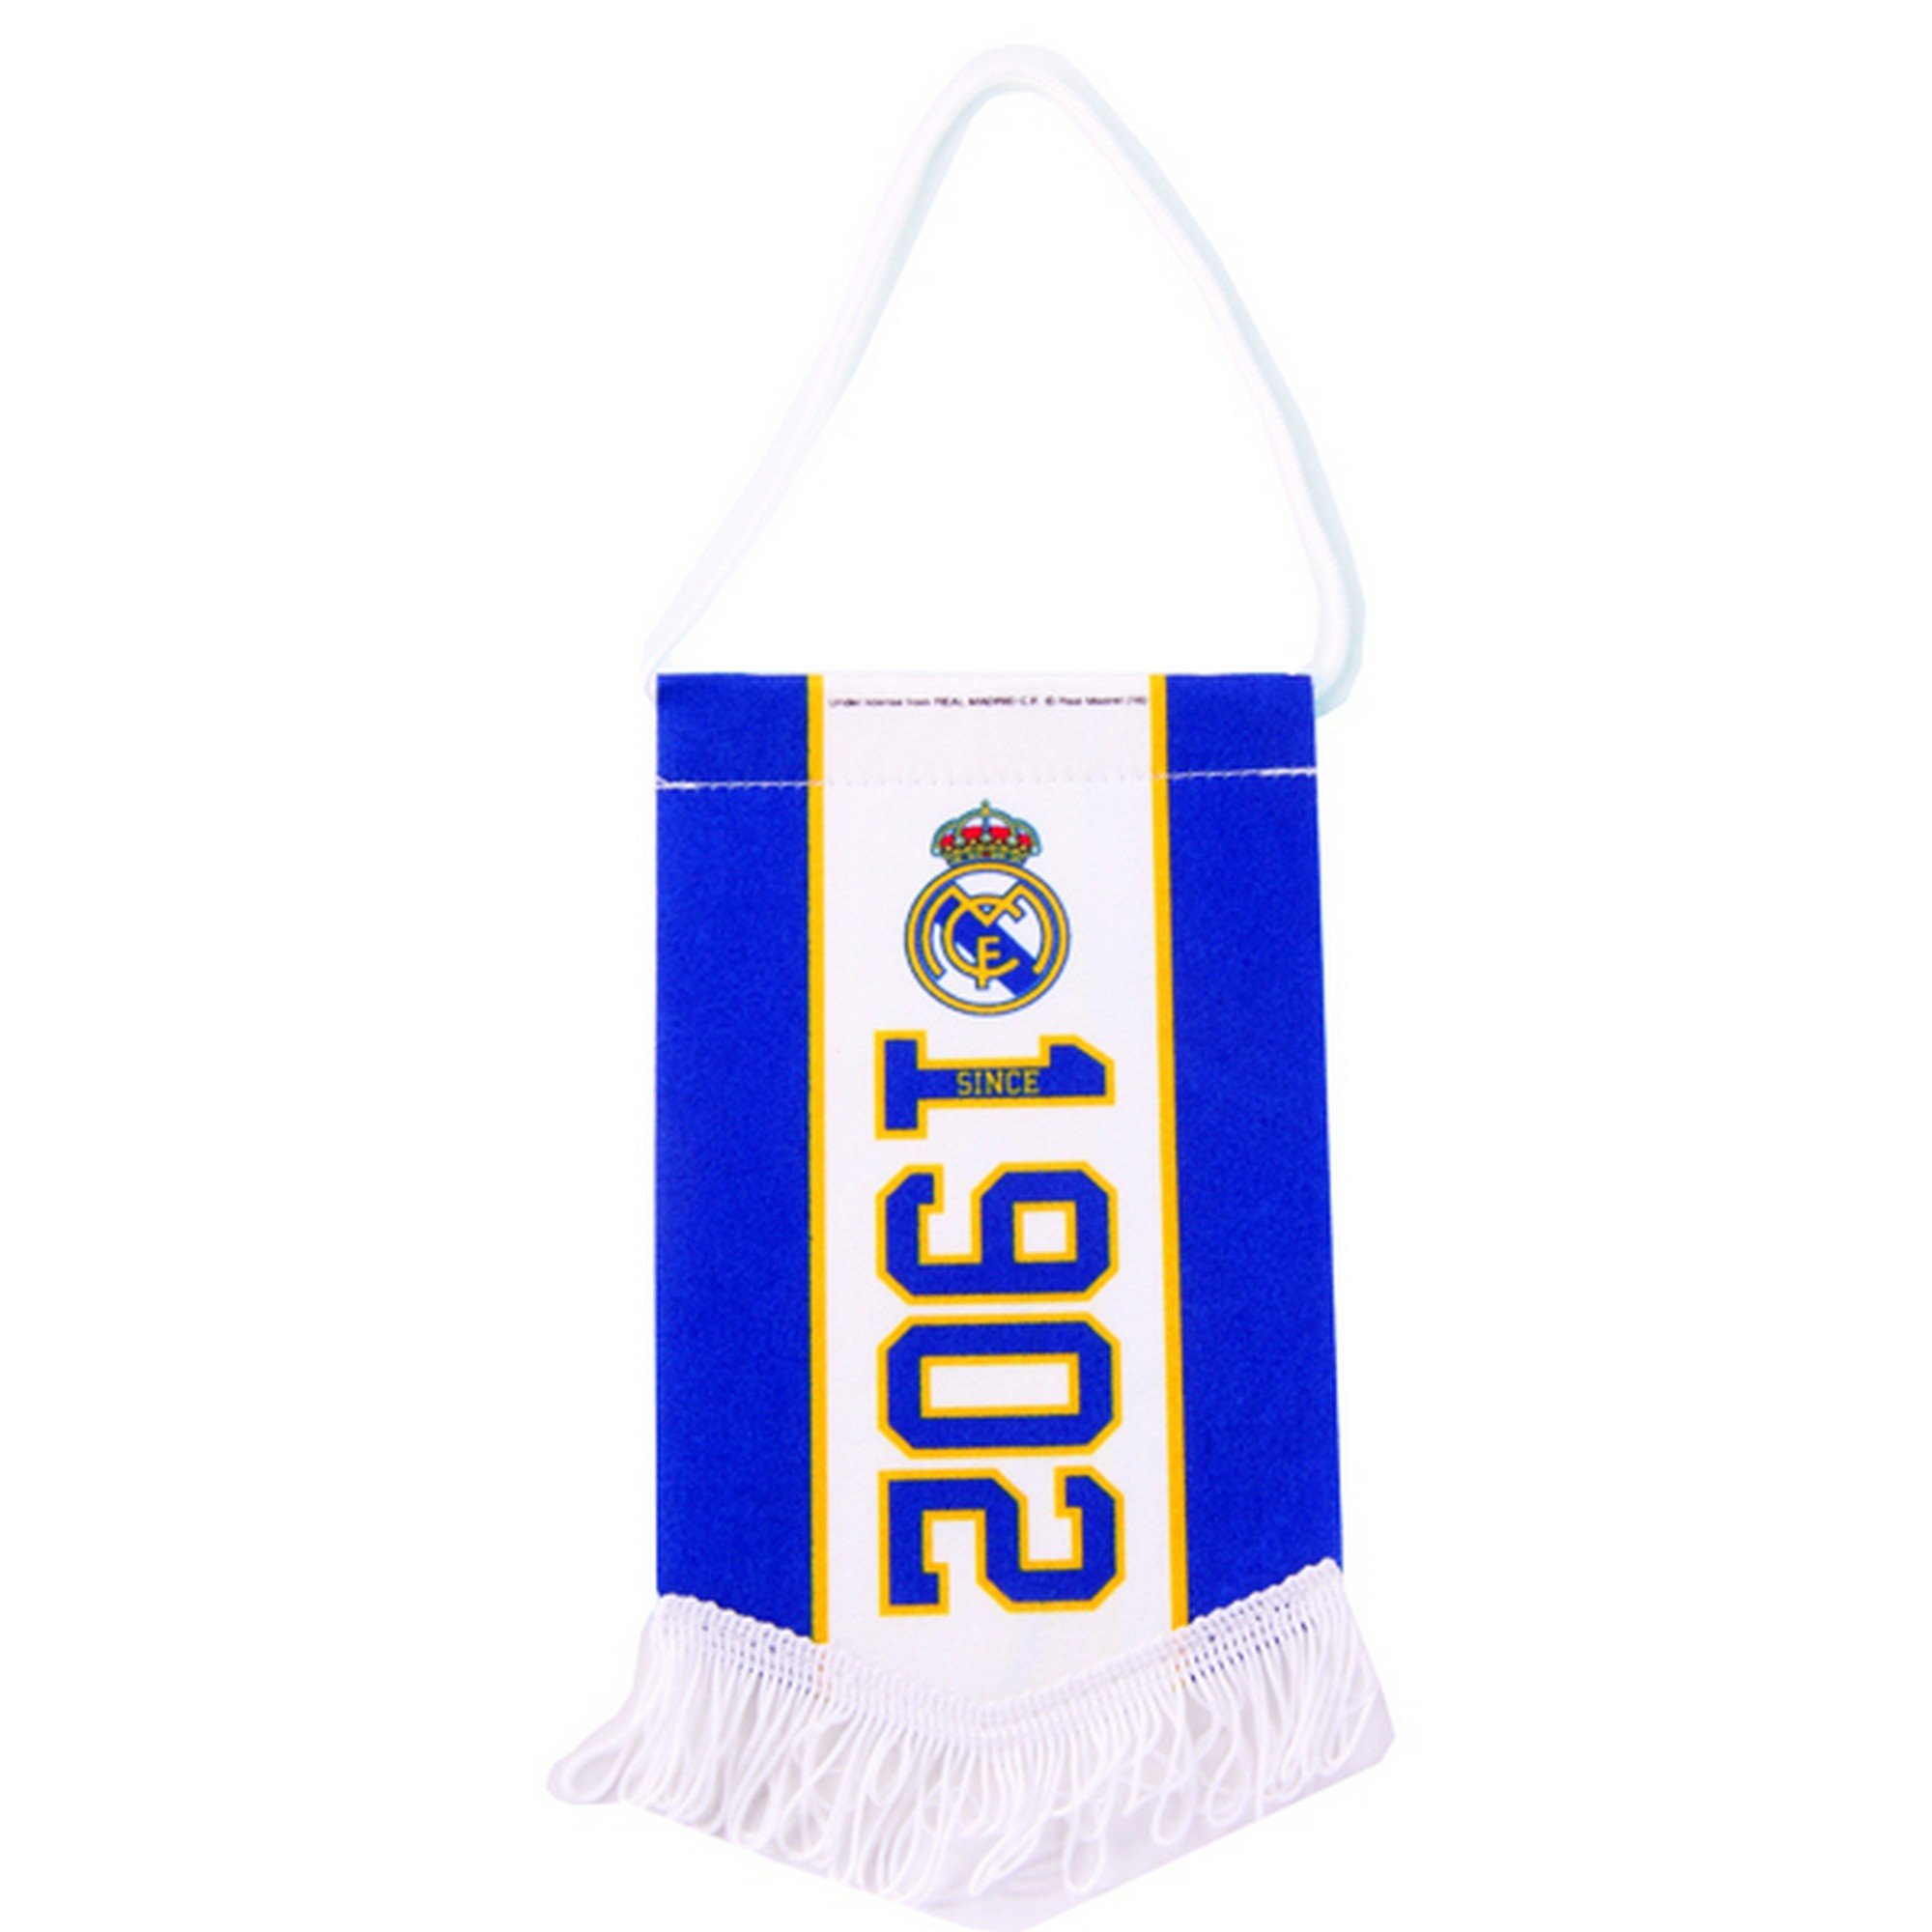 Real Madrid CF Official Established Football/Soccer Crest Pennant